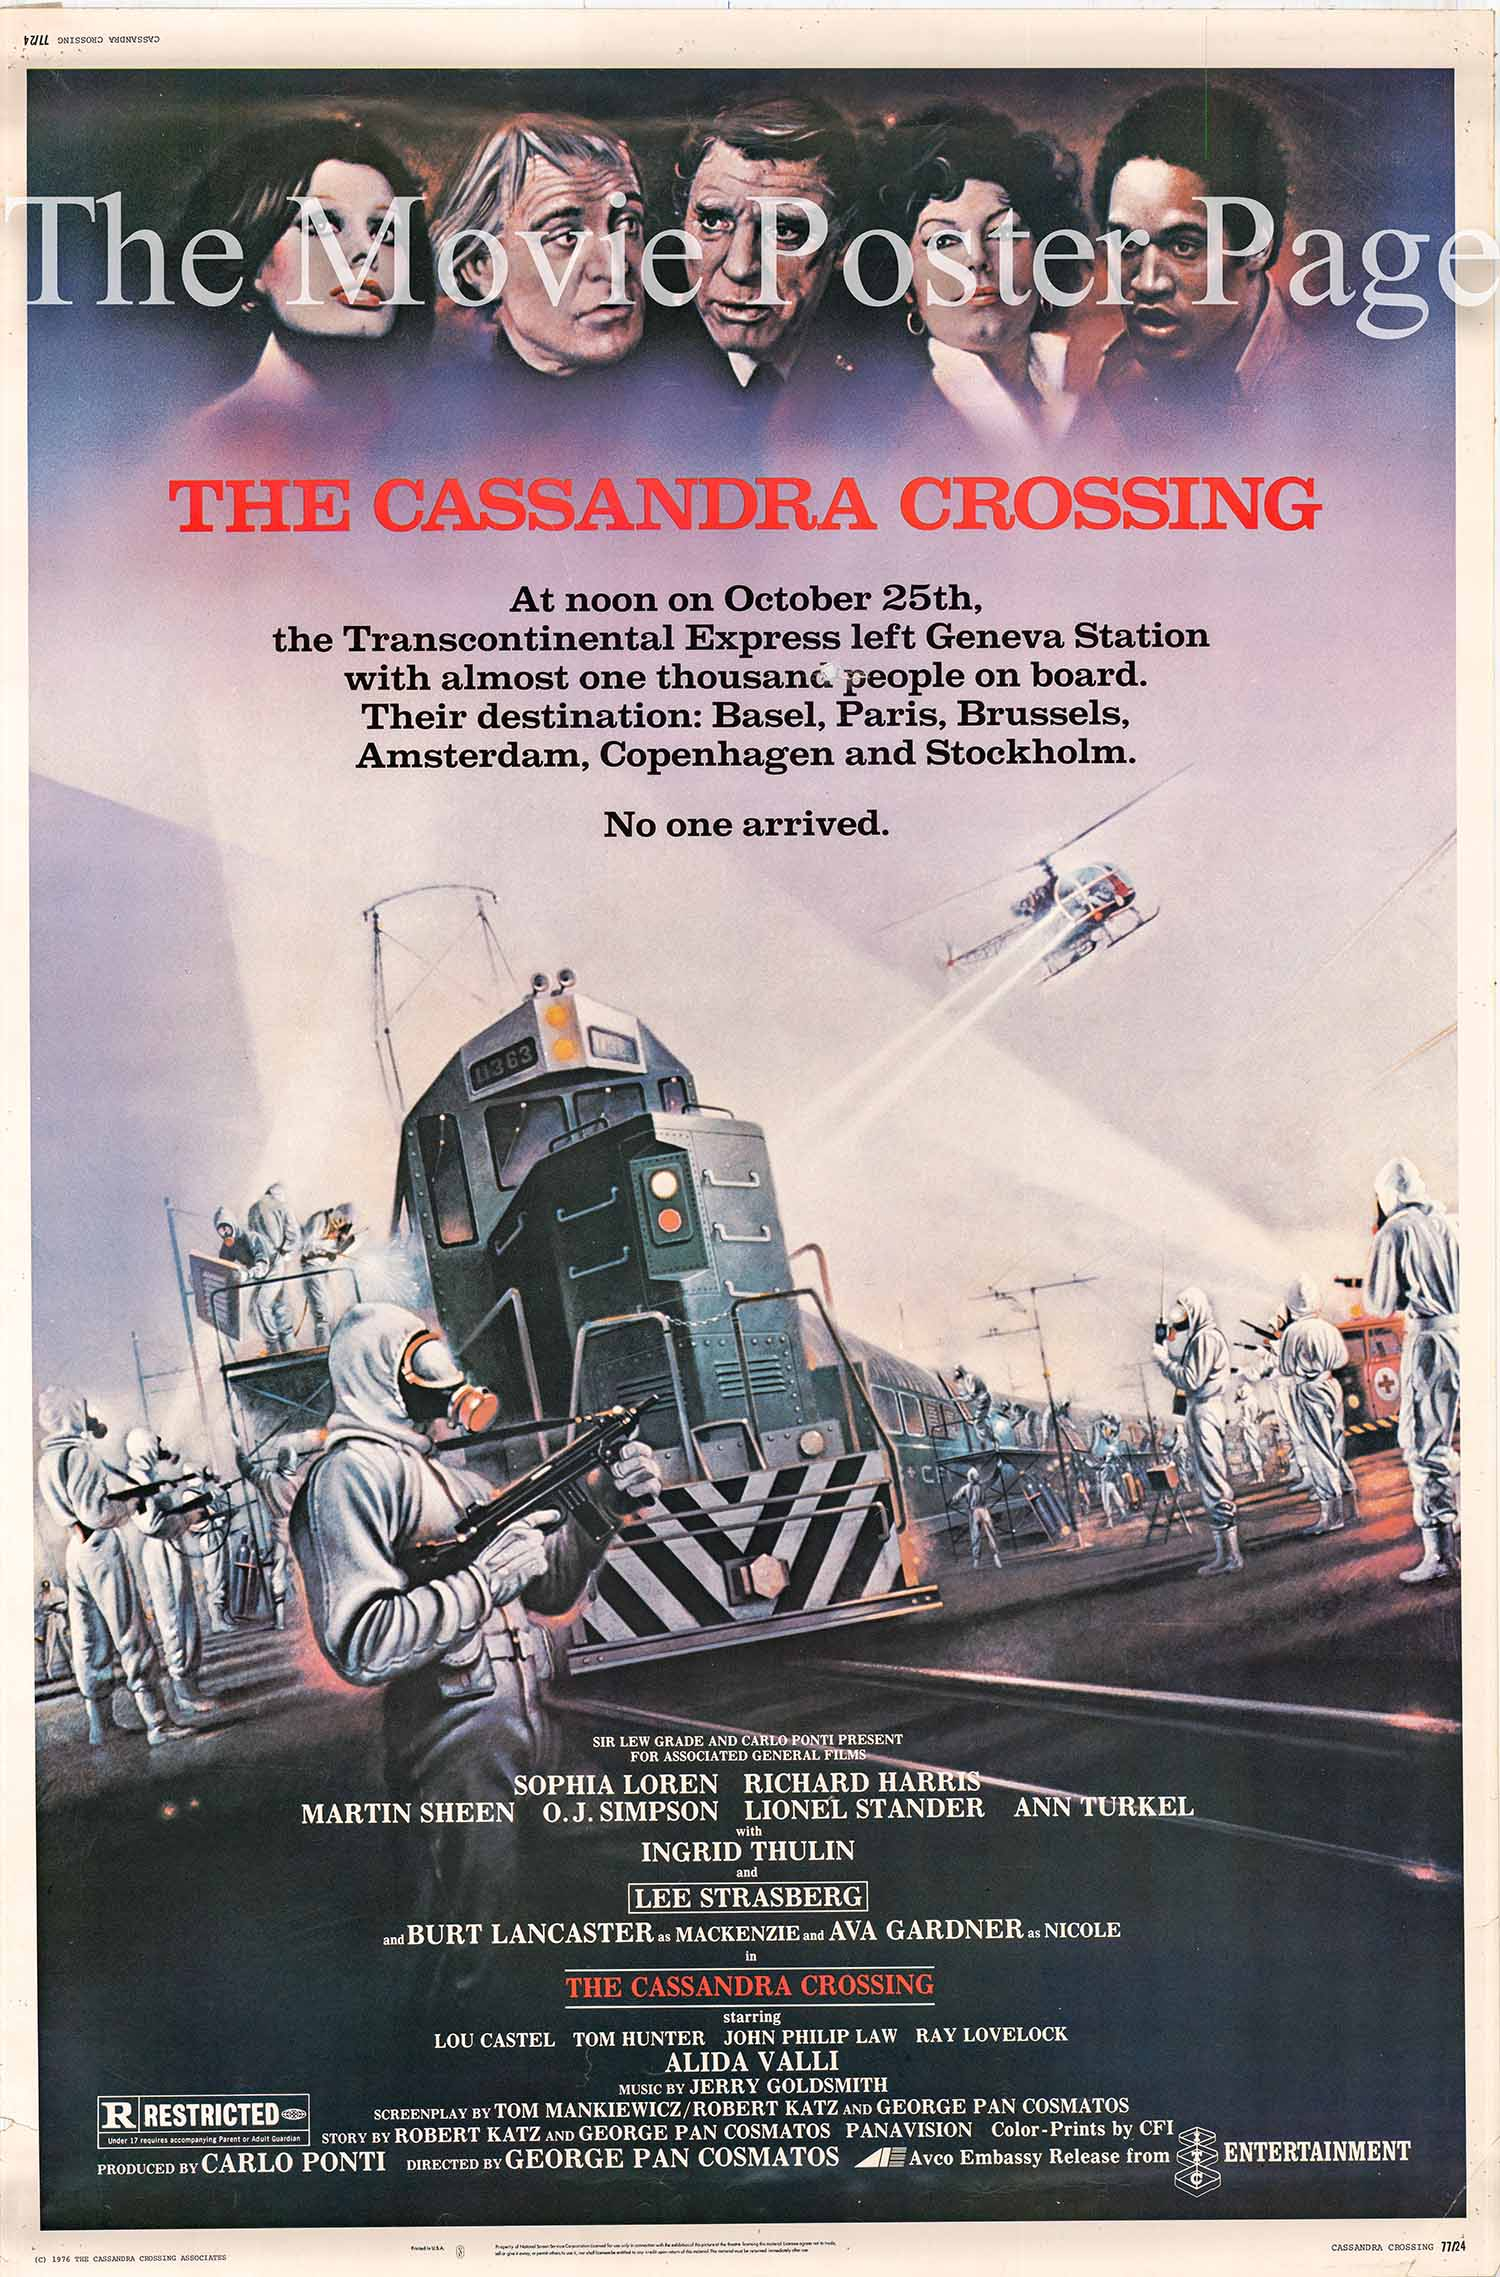 Pictured is a US 40x60 promotional poster for the 1976 George P. Cosmatos film The Cassandra Crossing starring Sophia Loren.